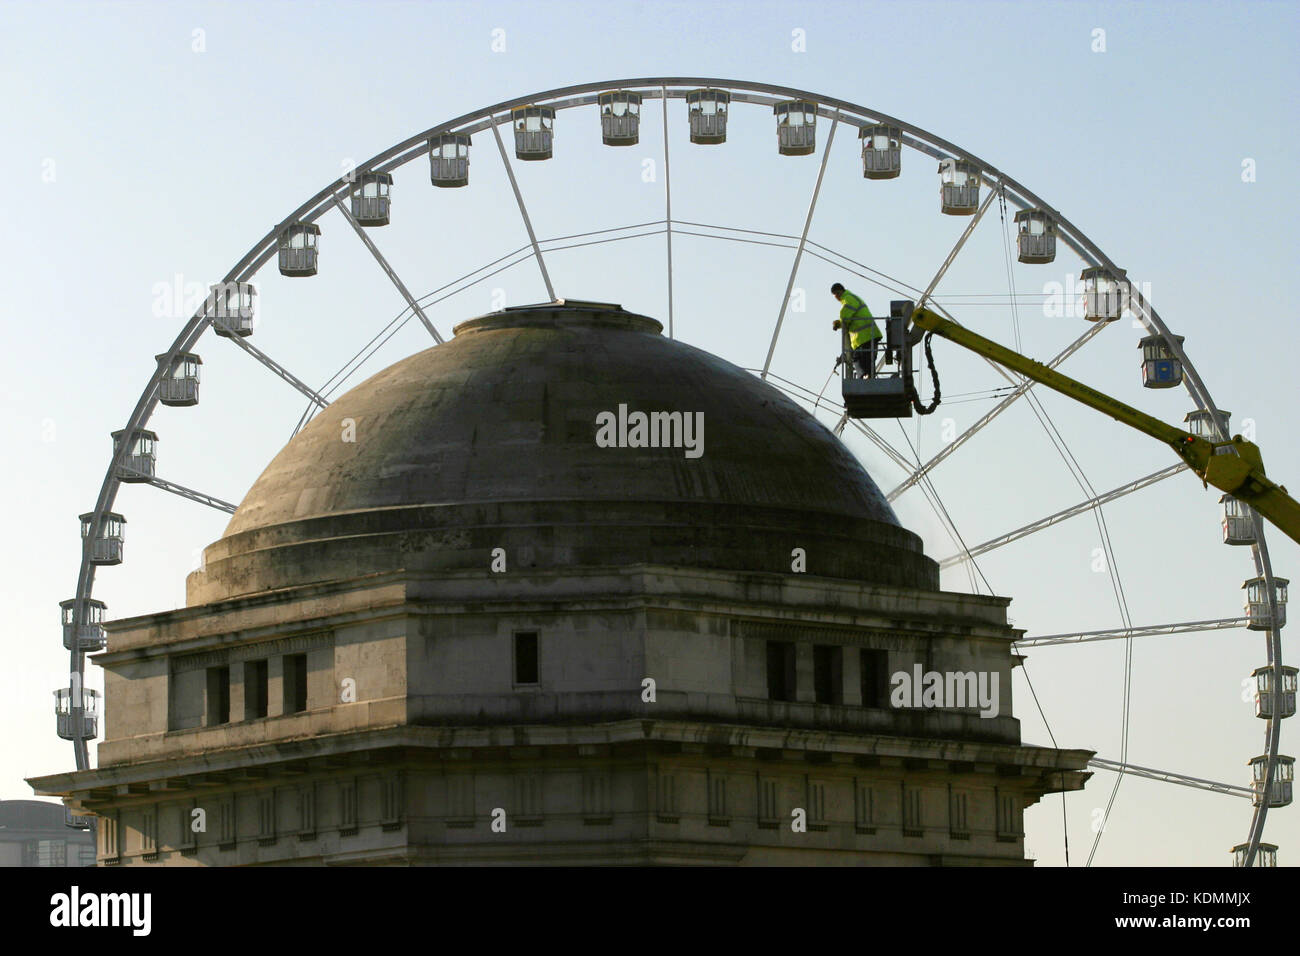 Worker tends to the roof of Remembrance Hall, Birmingham, with the Wheel of Birmingham behind, Nov 2003 Stock Photo